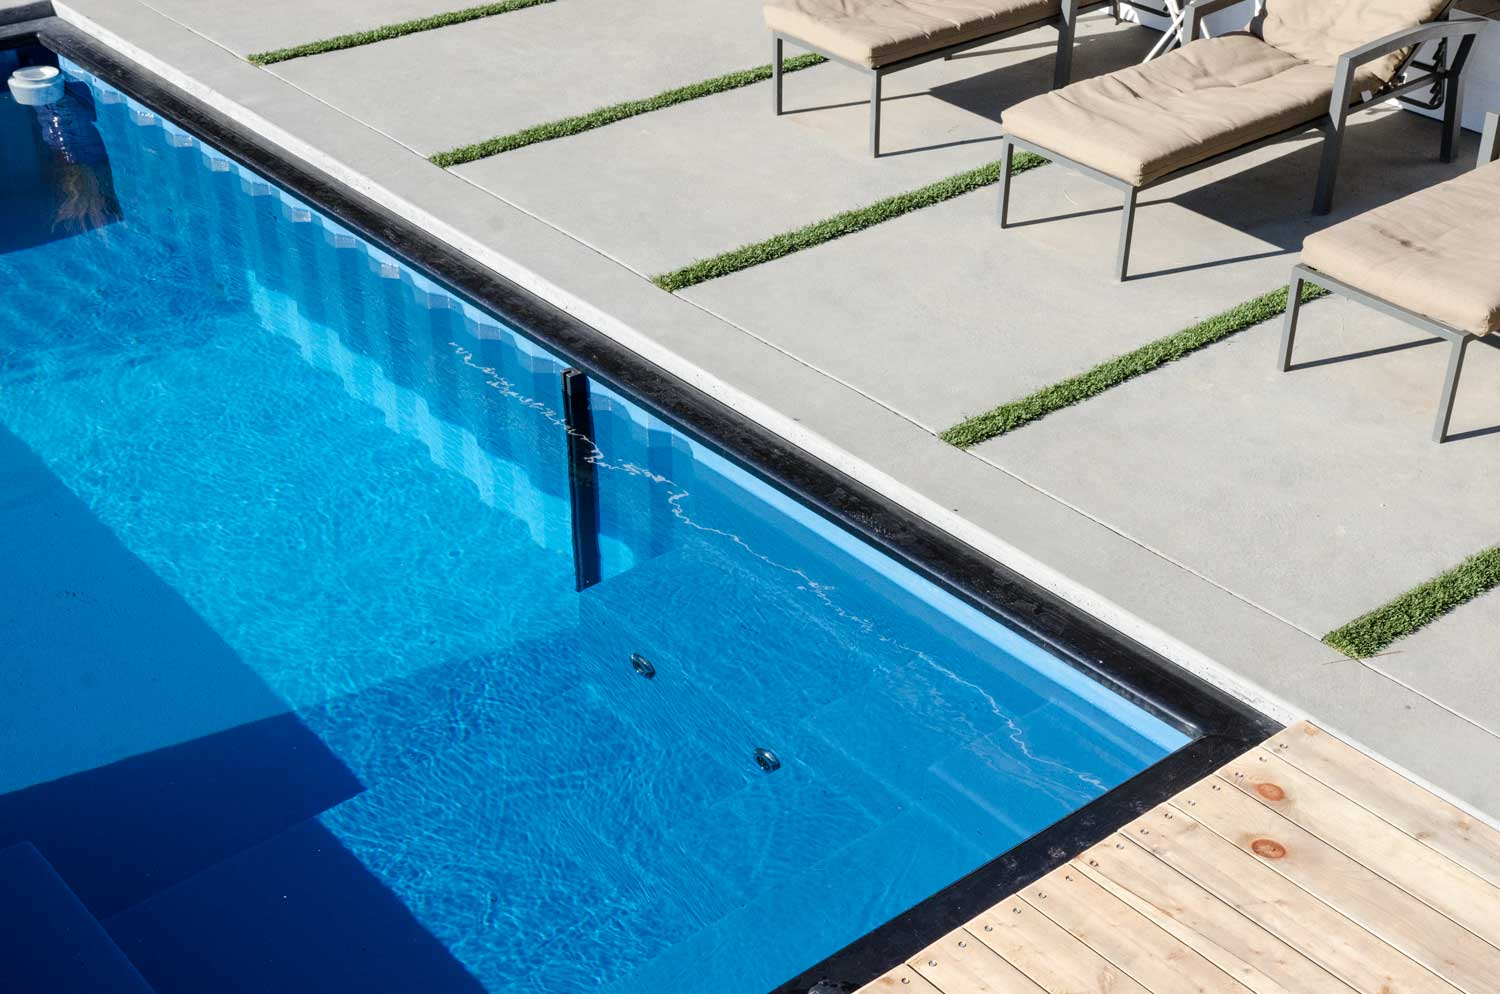 Modpool transforma contenedores en piscinas qore for Piscina container